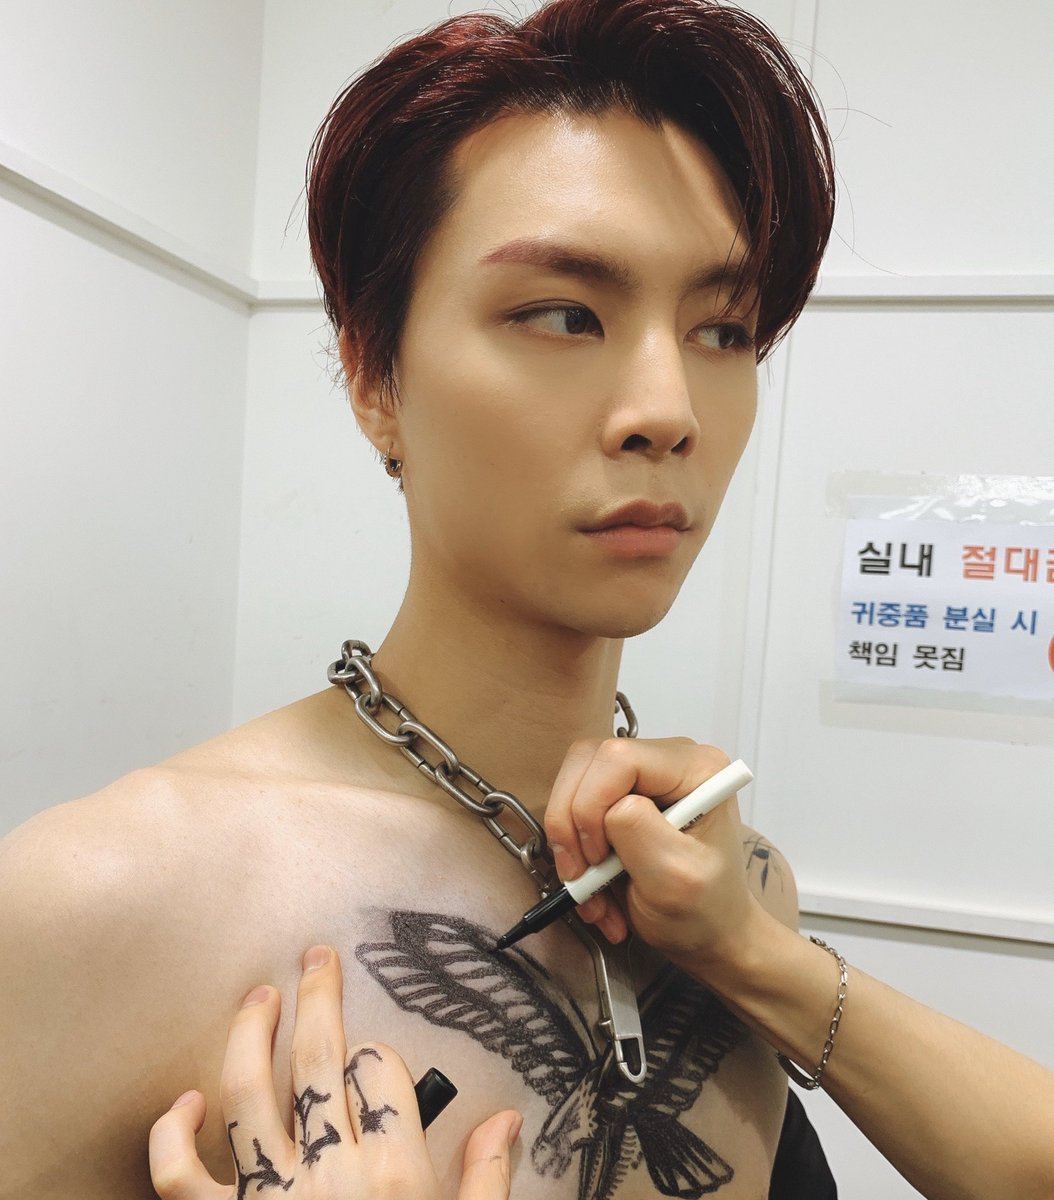 yuta helped johnny to retouch tattoo on his chest & drew butterfly for jungwoo's ear 😭😭 we live for artist yuta agenda 💚😭 https://t.co/i1l61IVuds